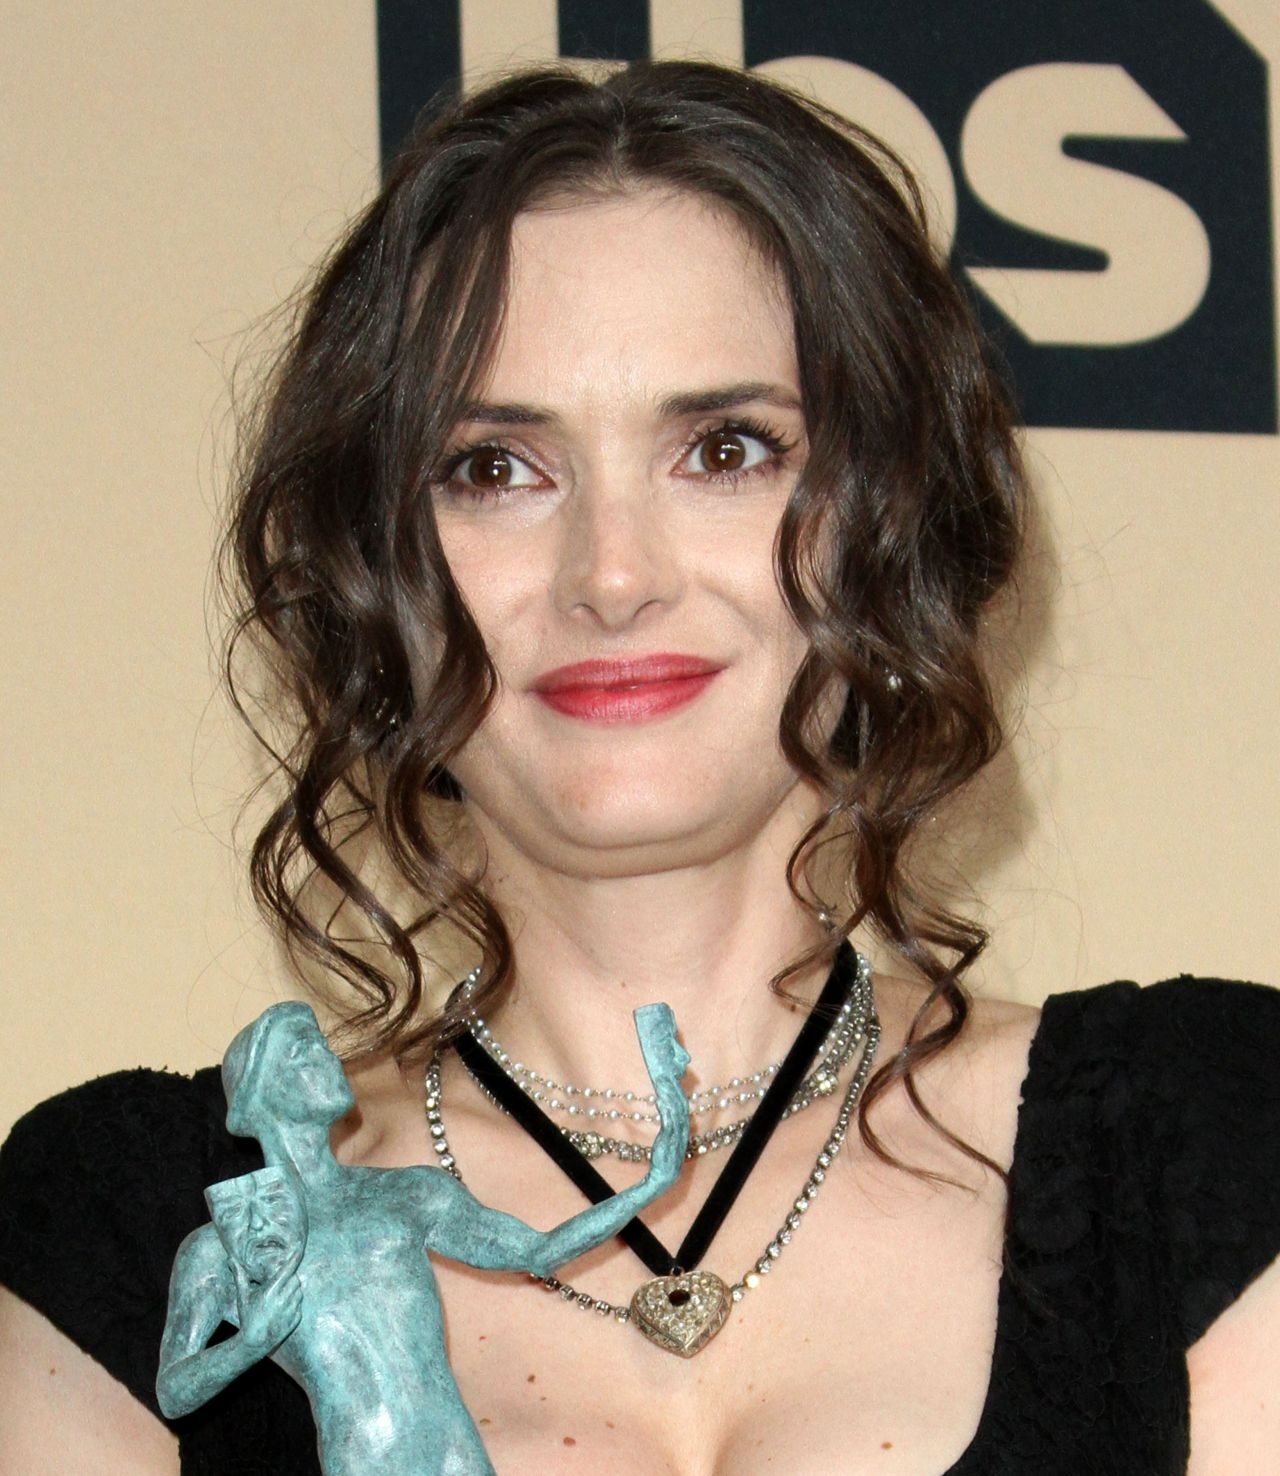 winona ryder - photo #28